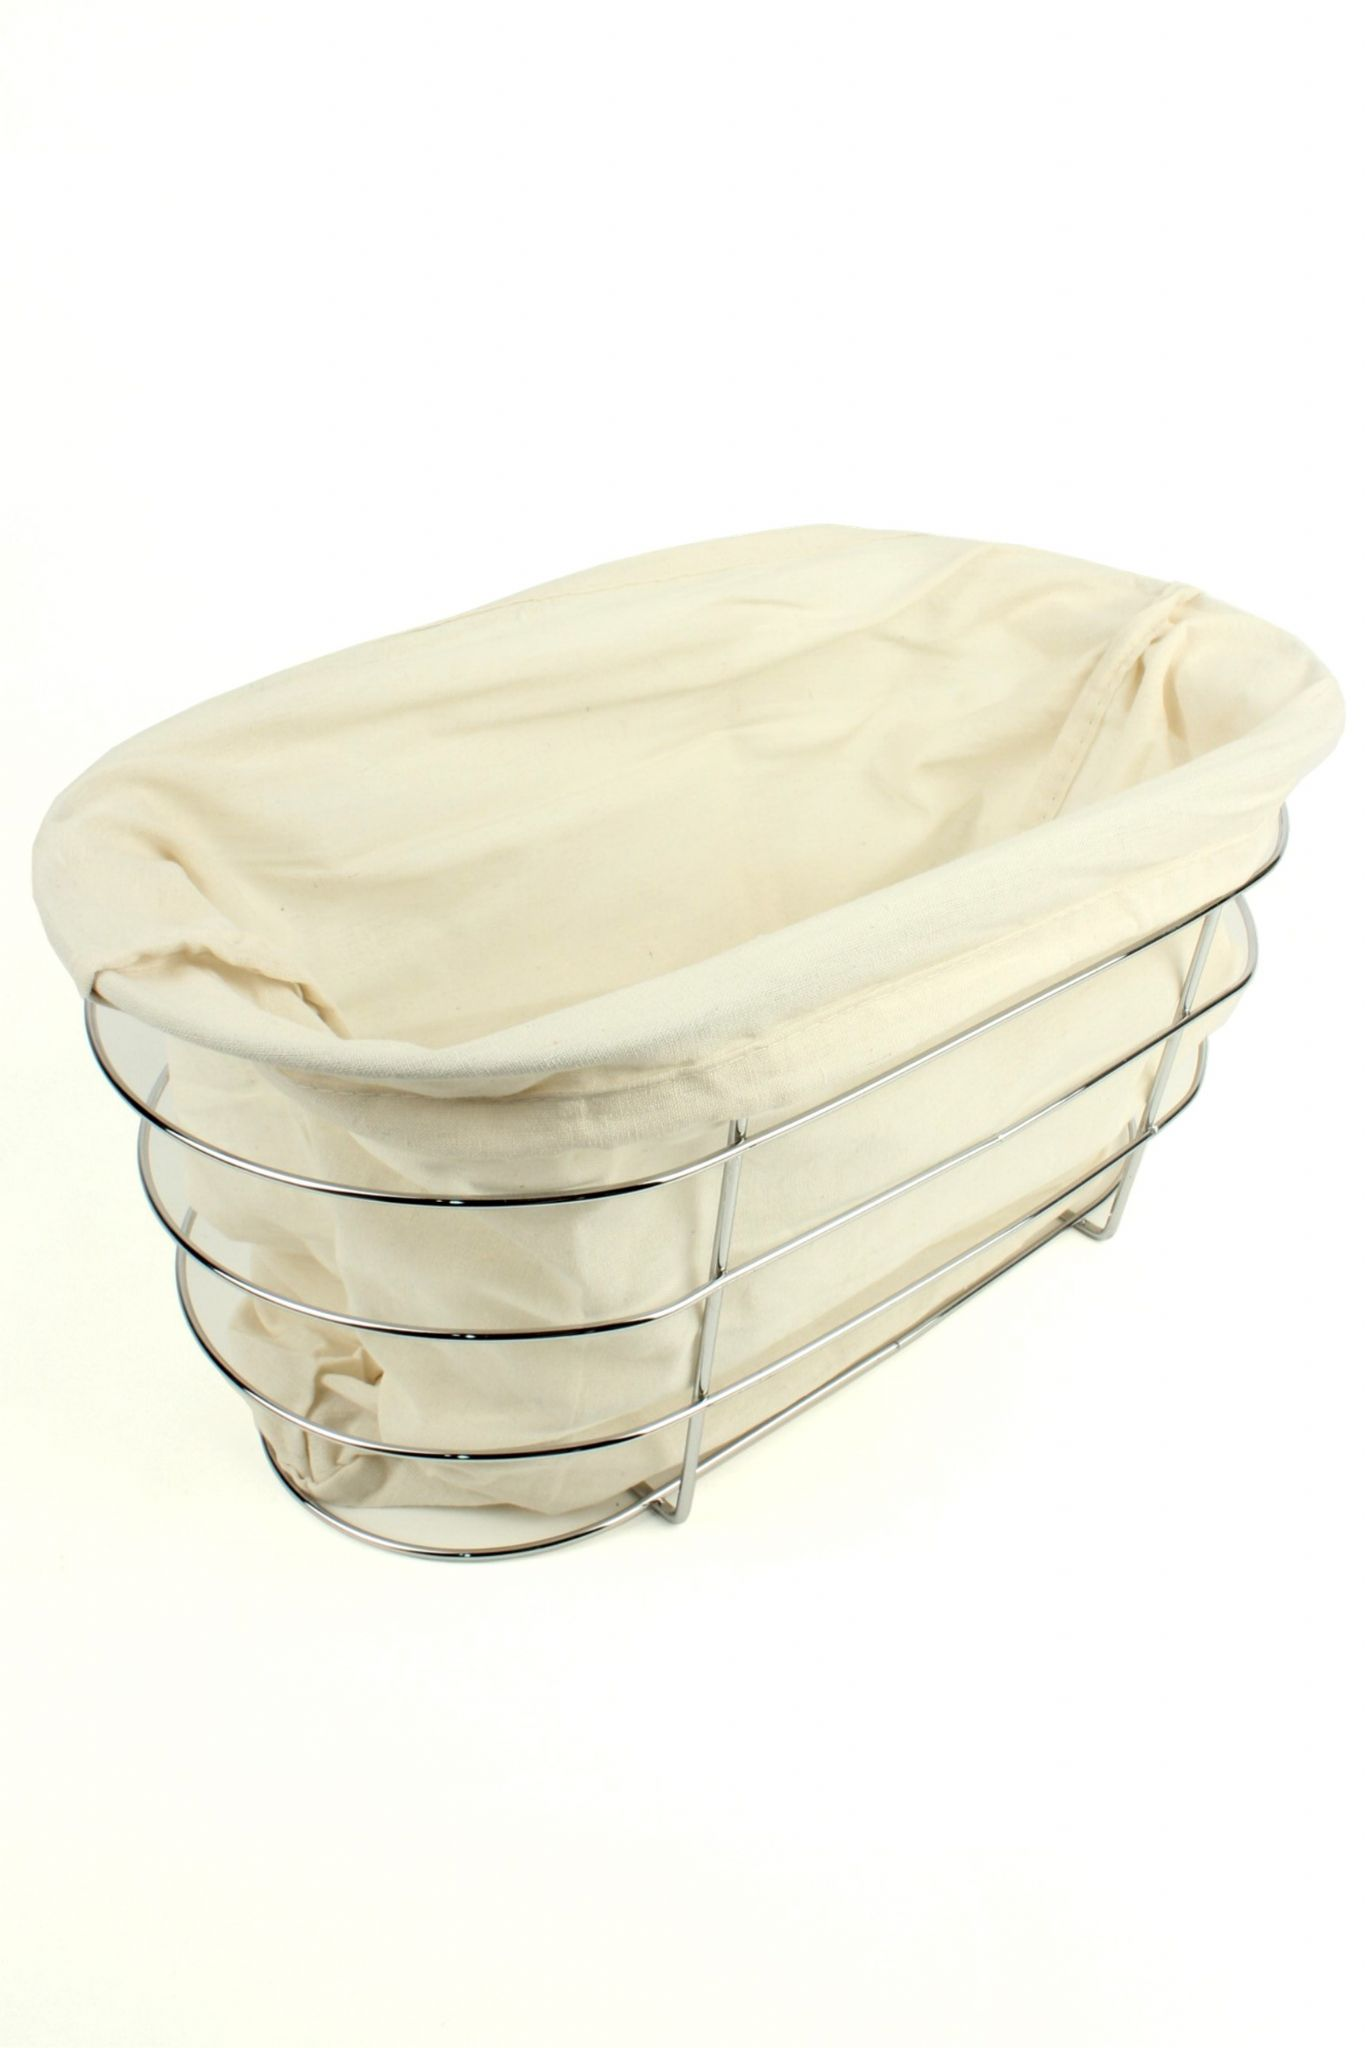 Wire Bread Basket With Fabric Liner and Bamboo Wood Chopping Board Lid